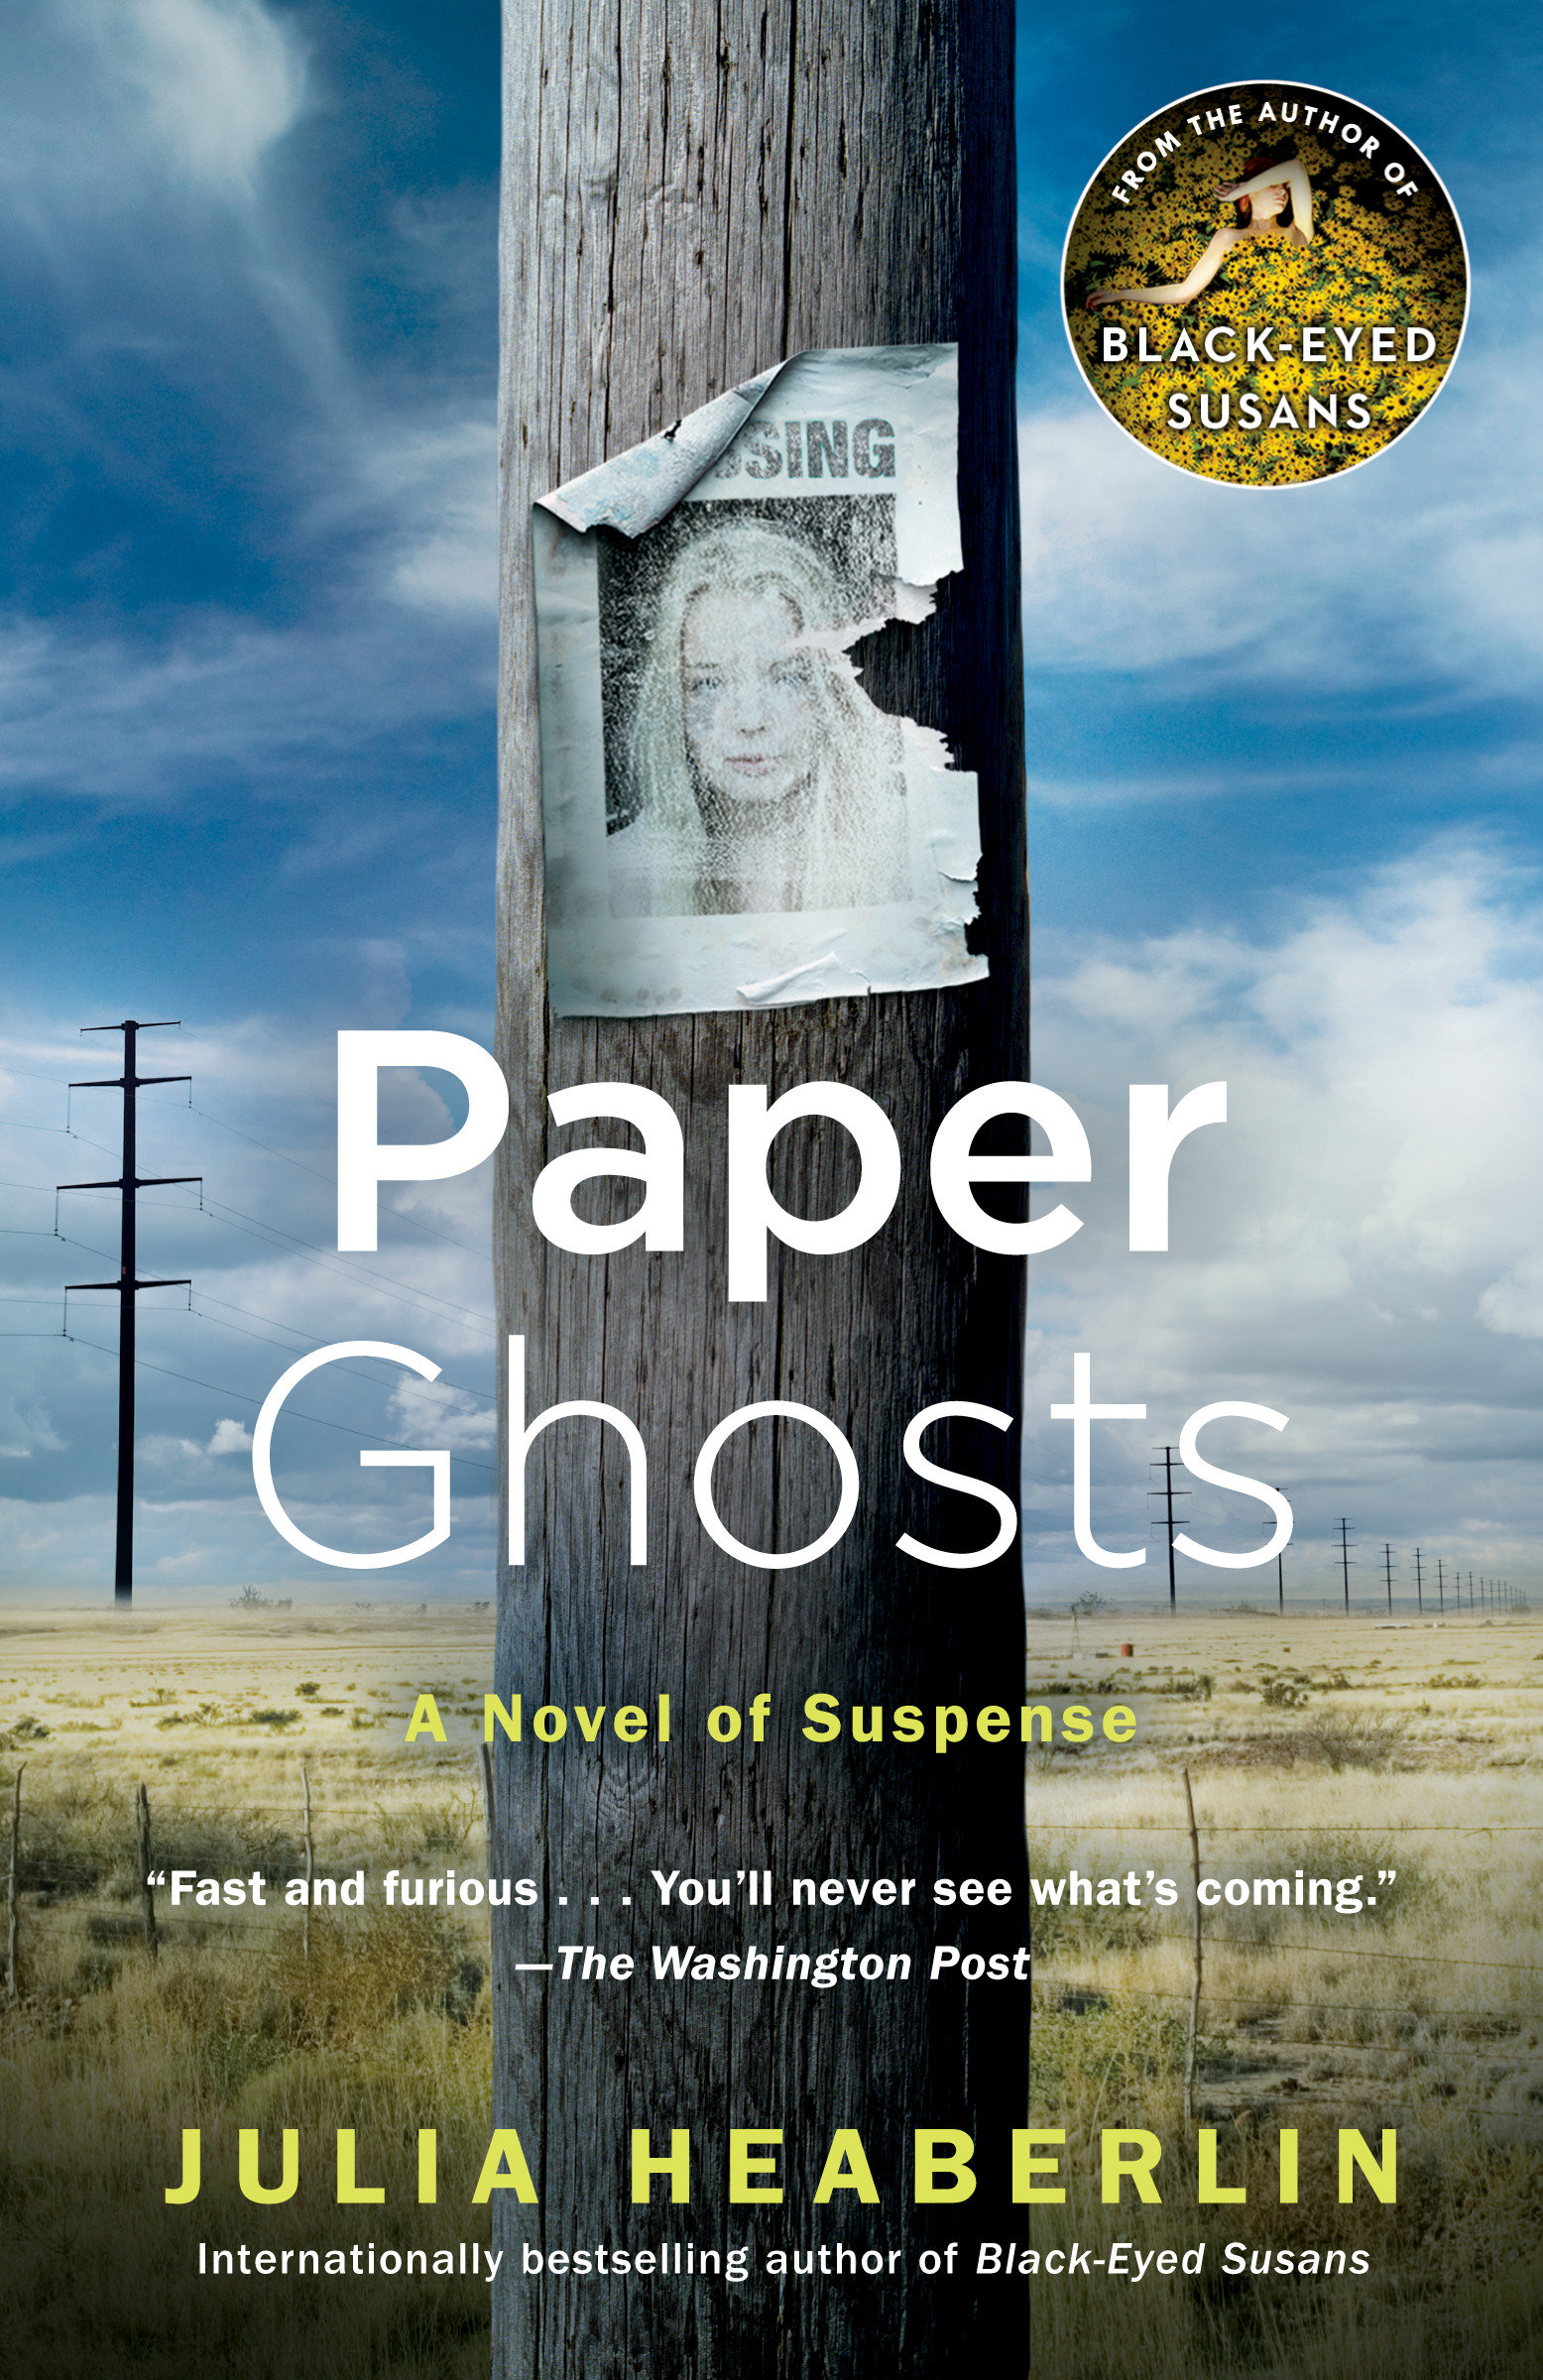 Paper ghosts : a novel of suspense